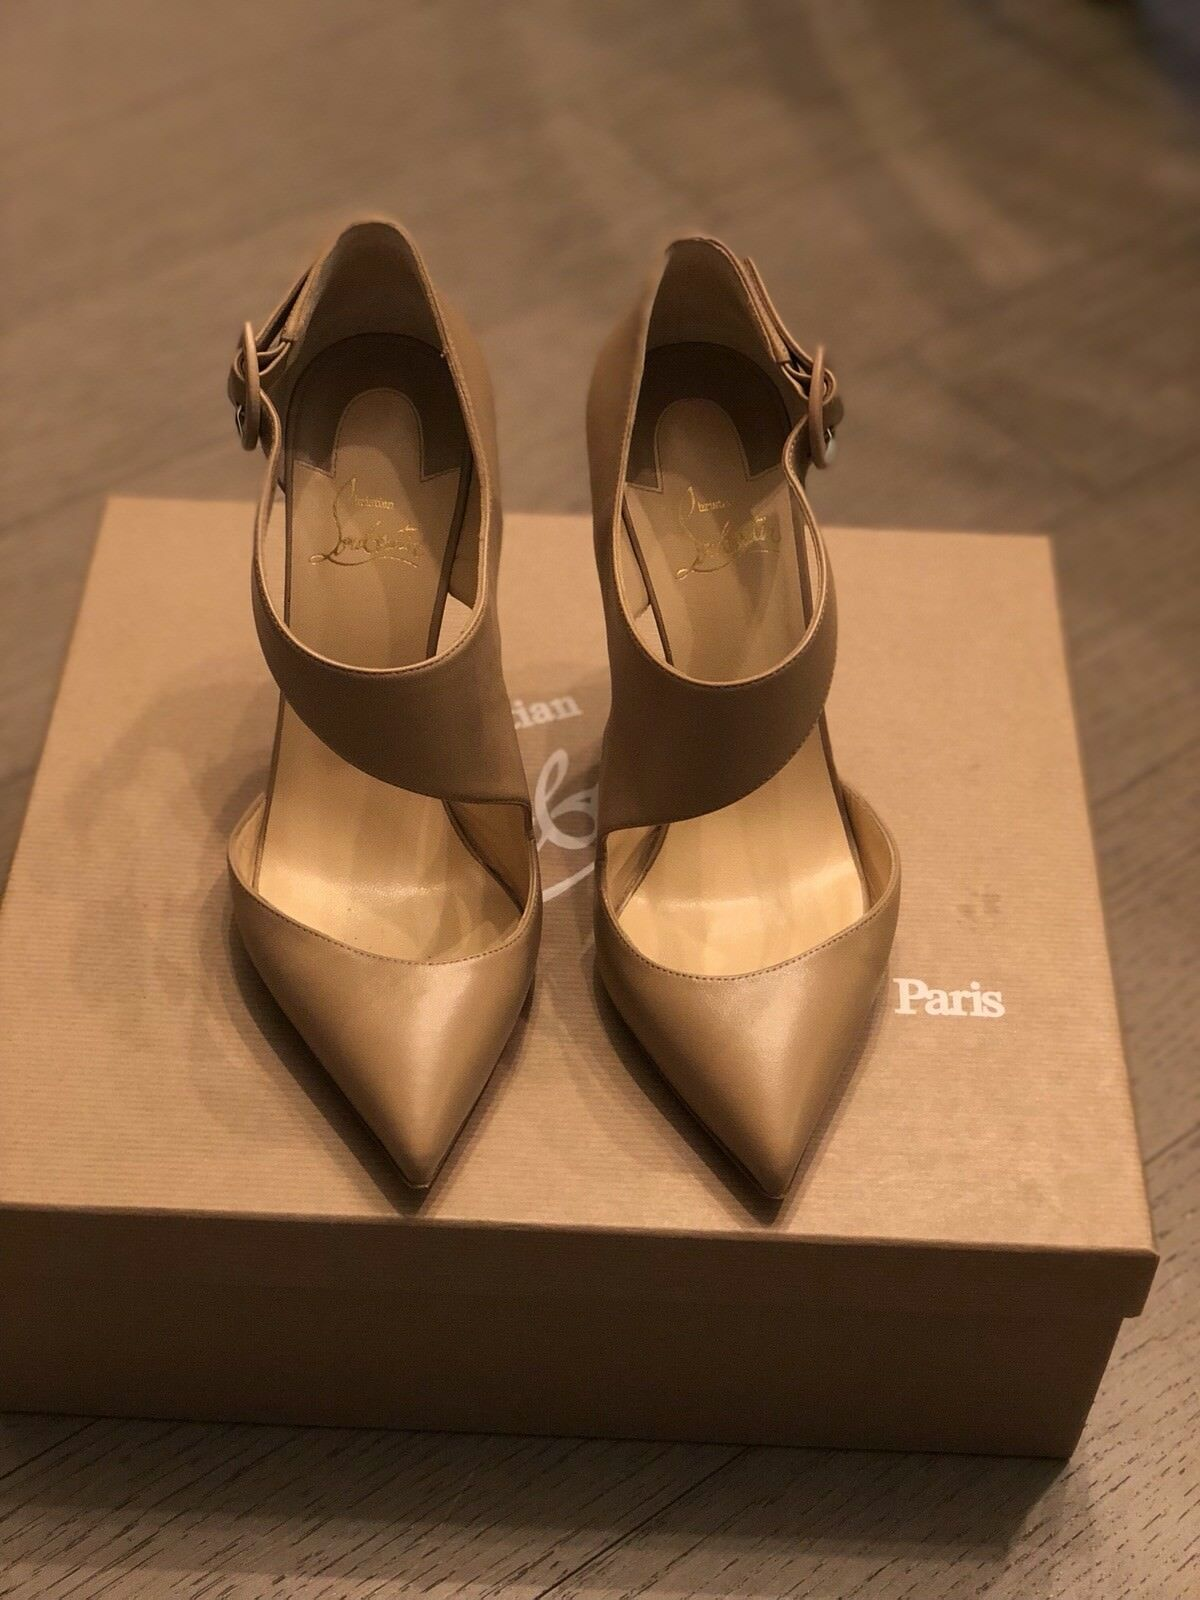 Christian Louboutin Nude Sharpeta 39.5 - Excellent Condition Condition Condition - Worn for 2 hrs a49ec4